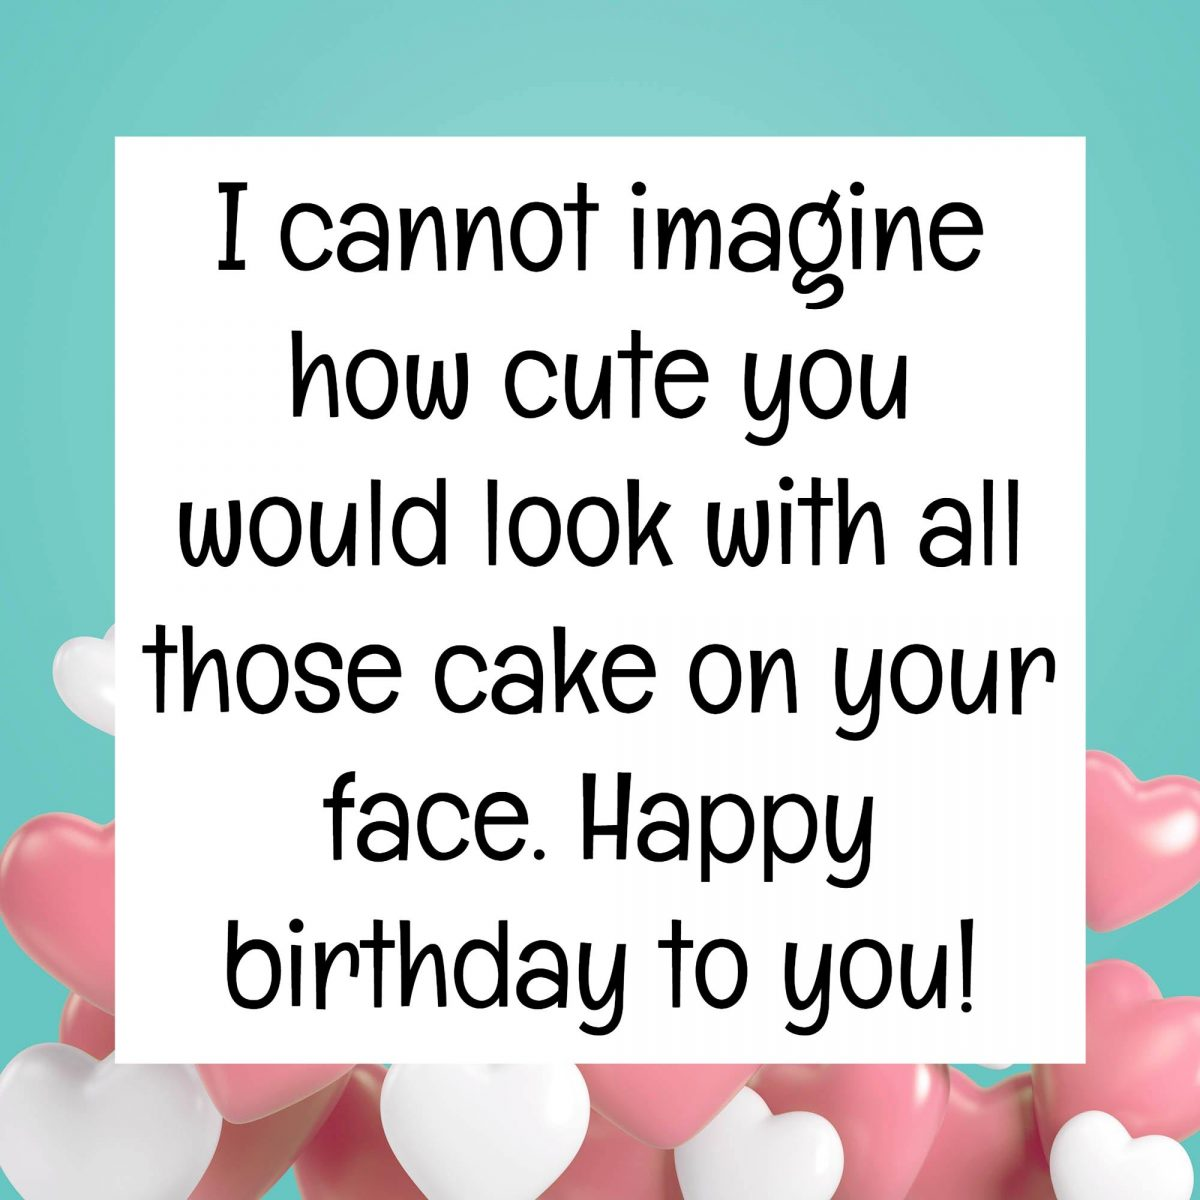 Surprising 10 Heartfelt Birthday Wishes For Friends Quotereel Funny Birthday Cards Online Alyptdamsfinfo